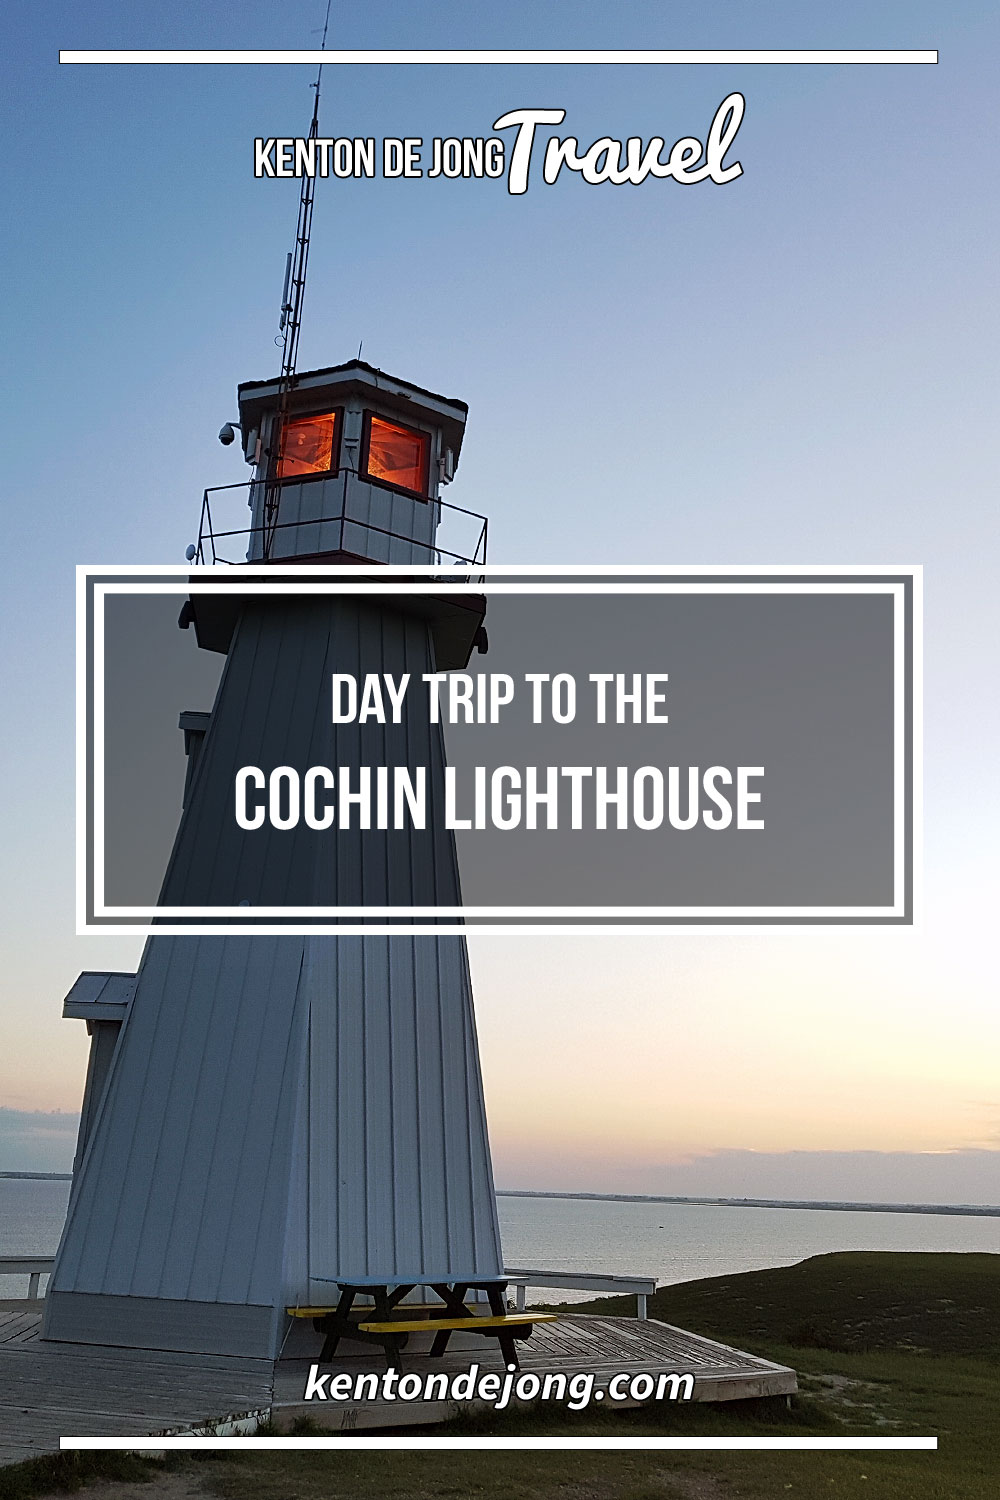 Day Trip to the Cochin Lighthouse